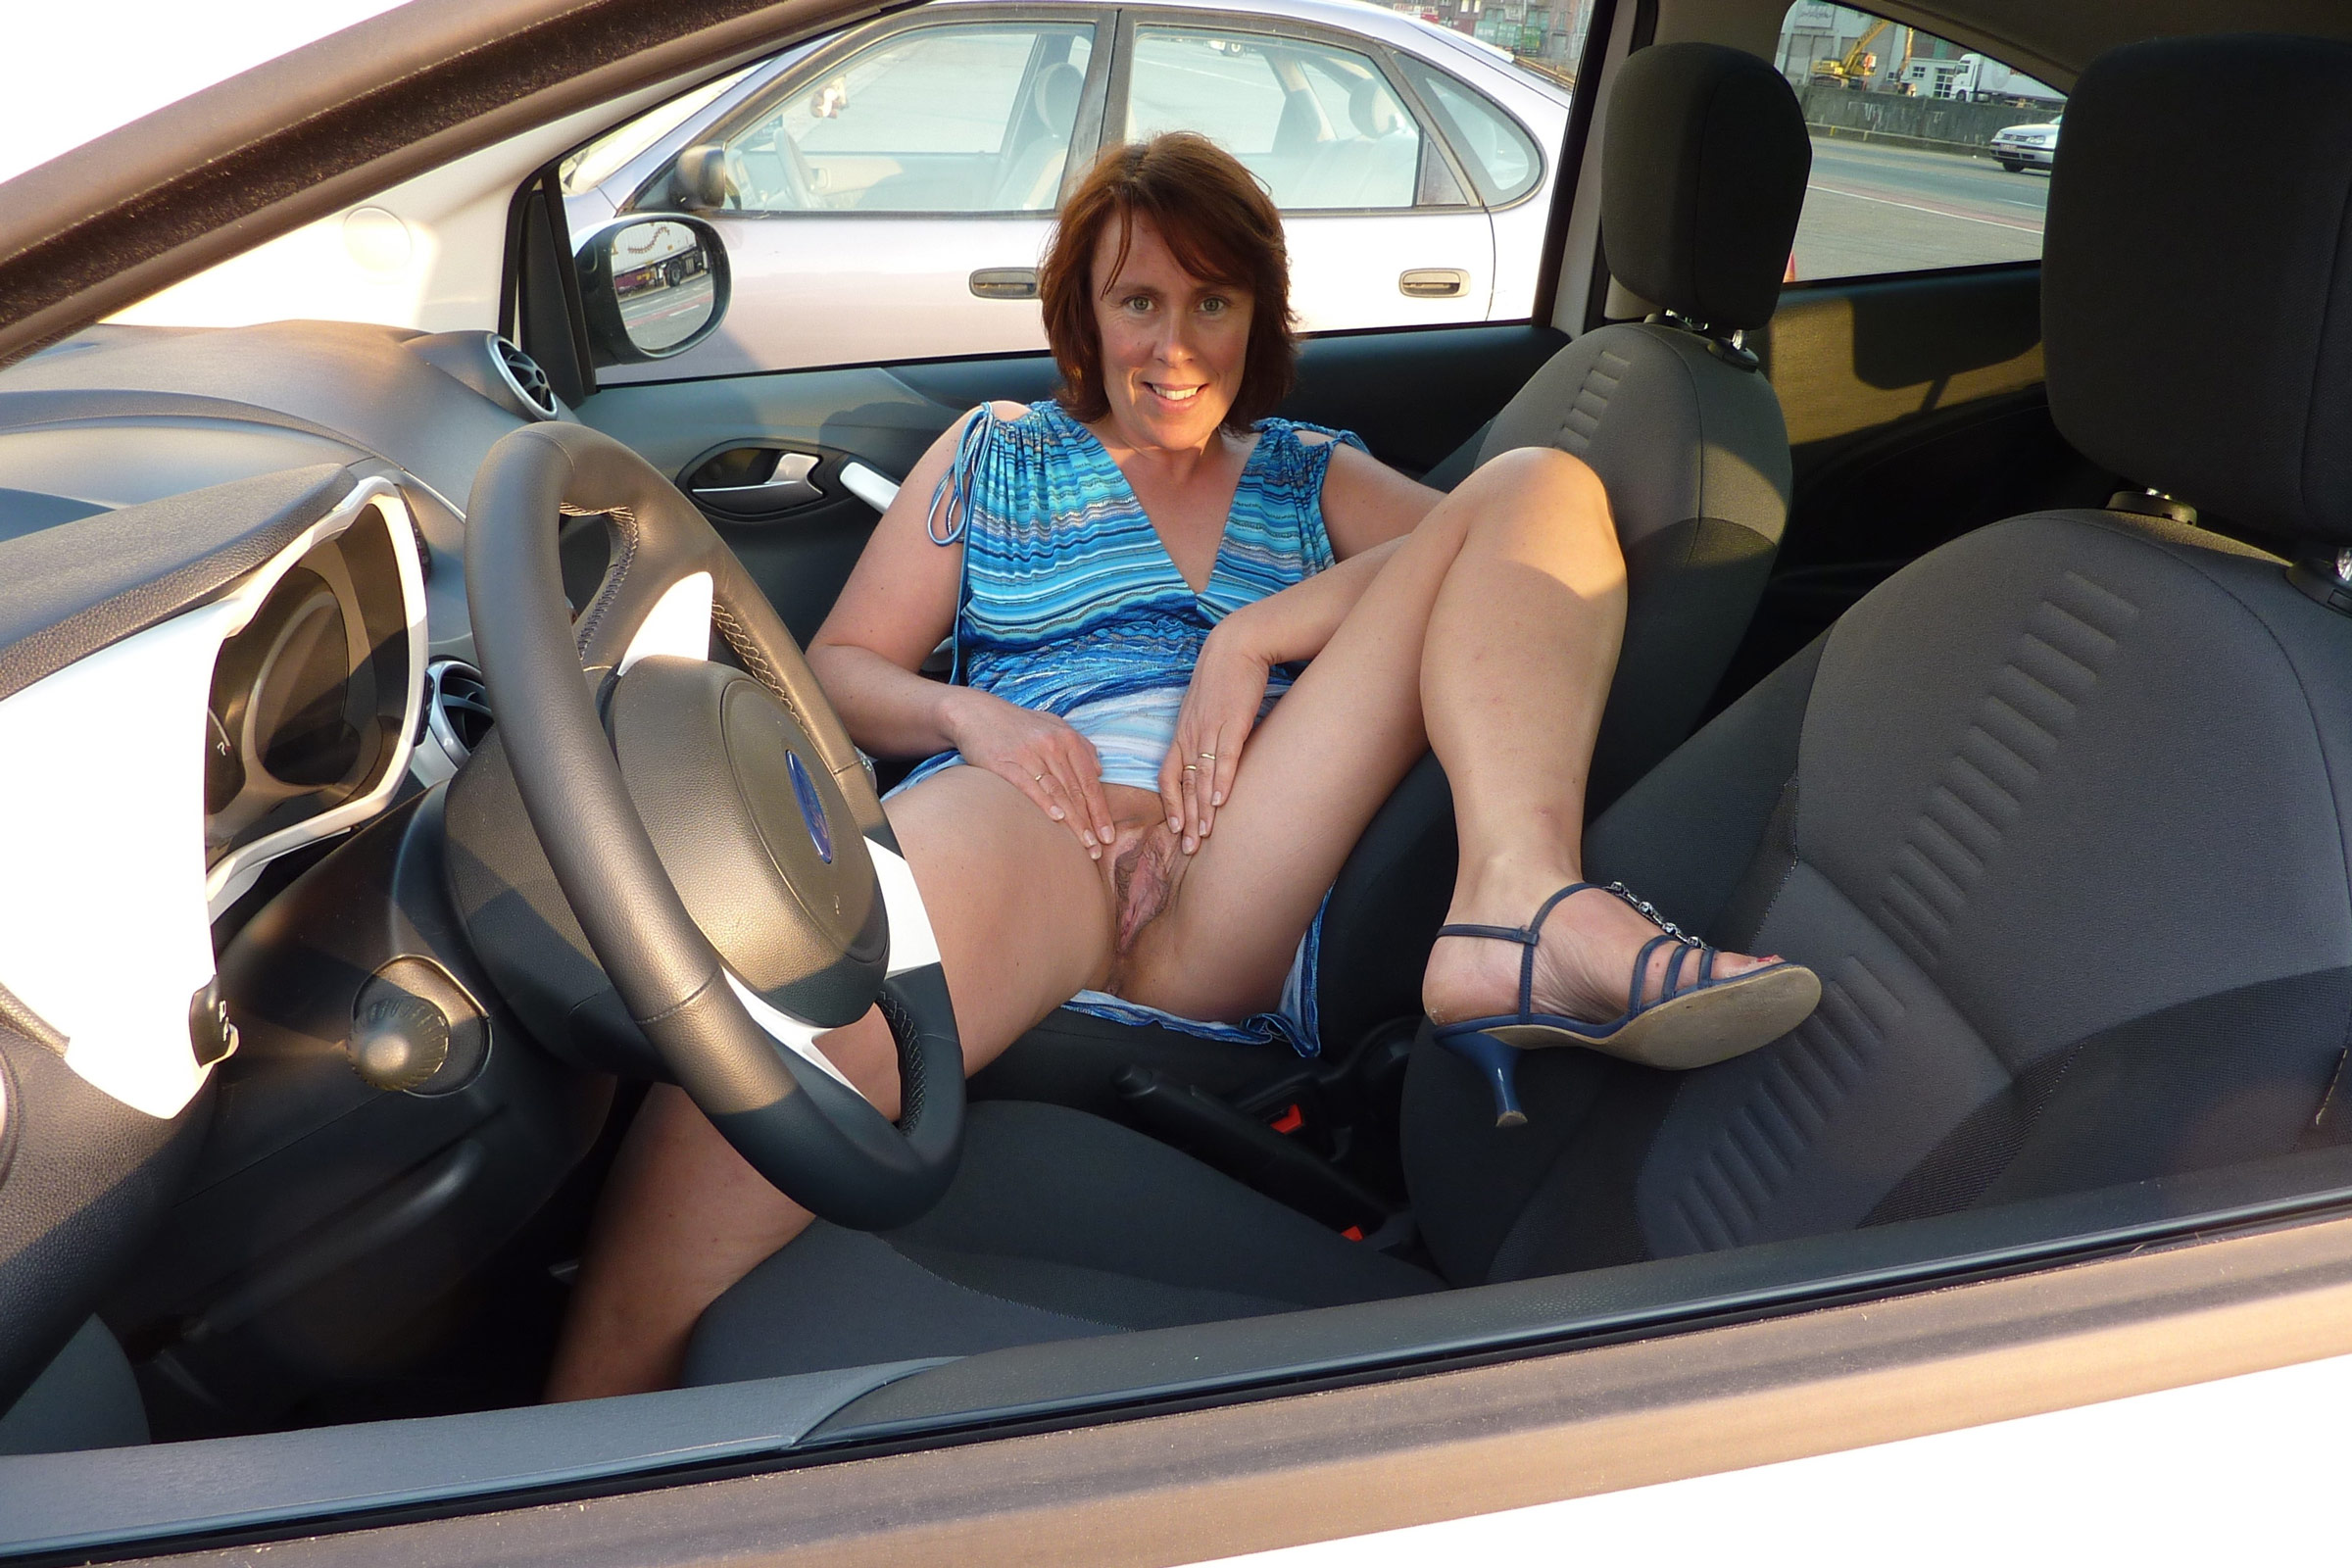 mom nude in car